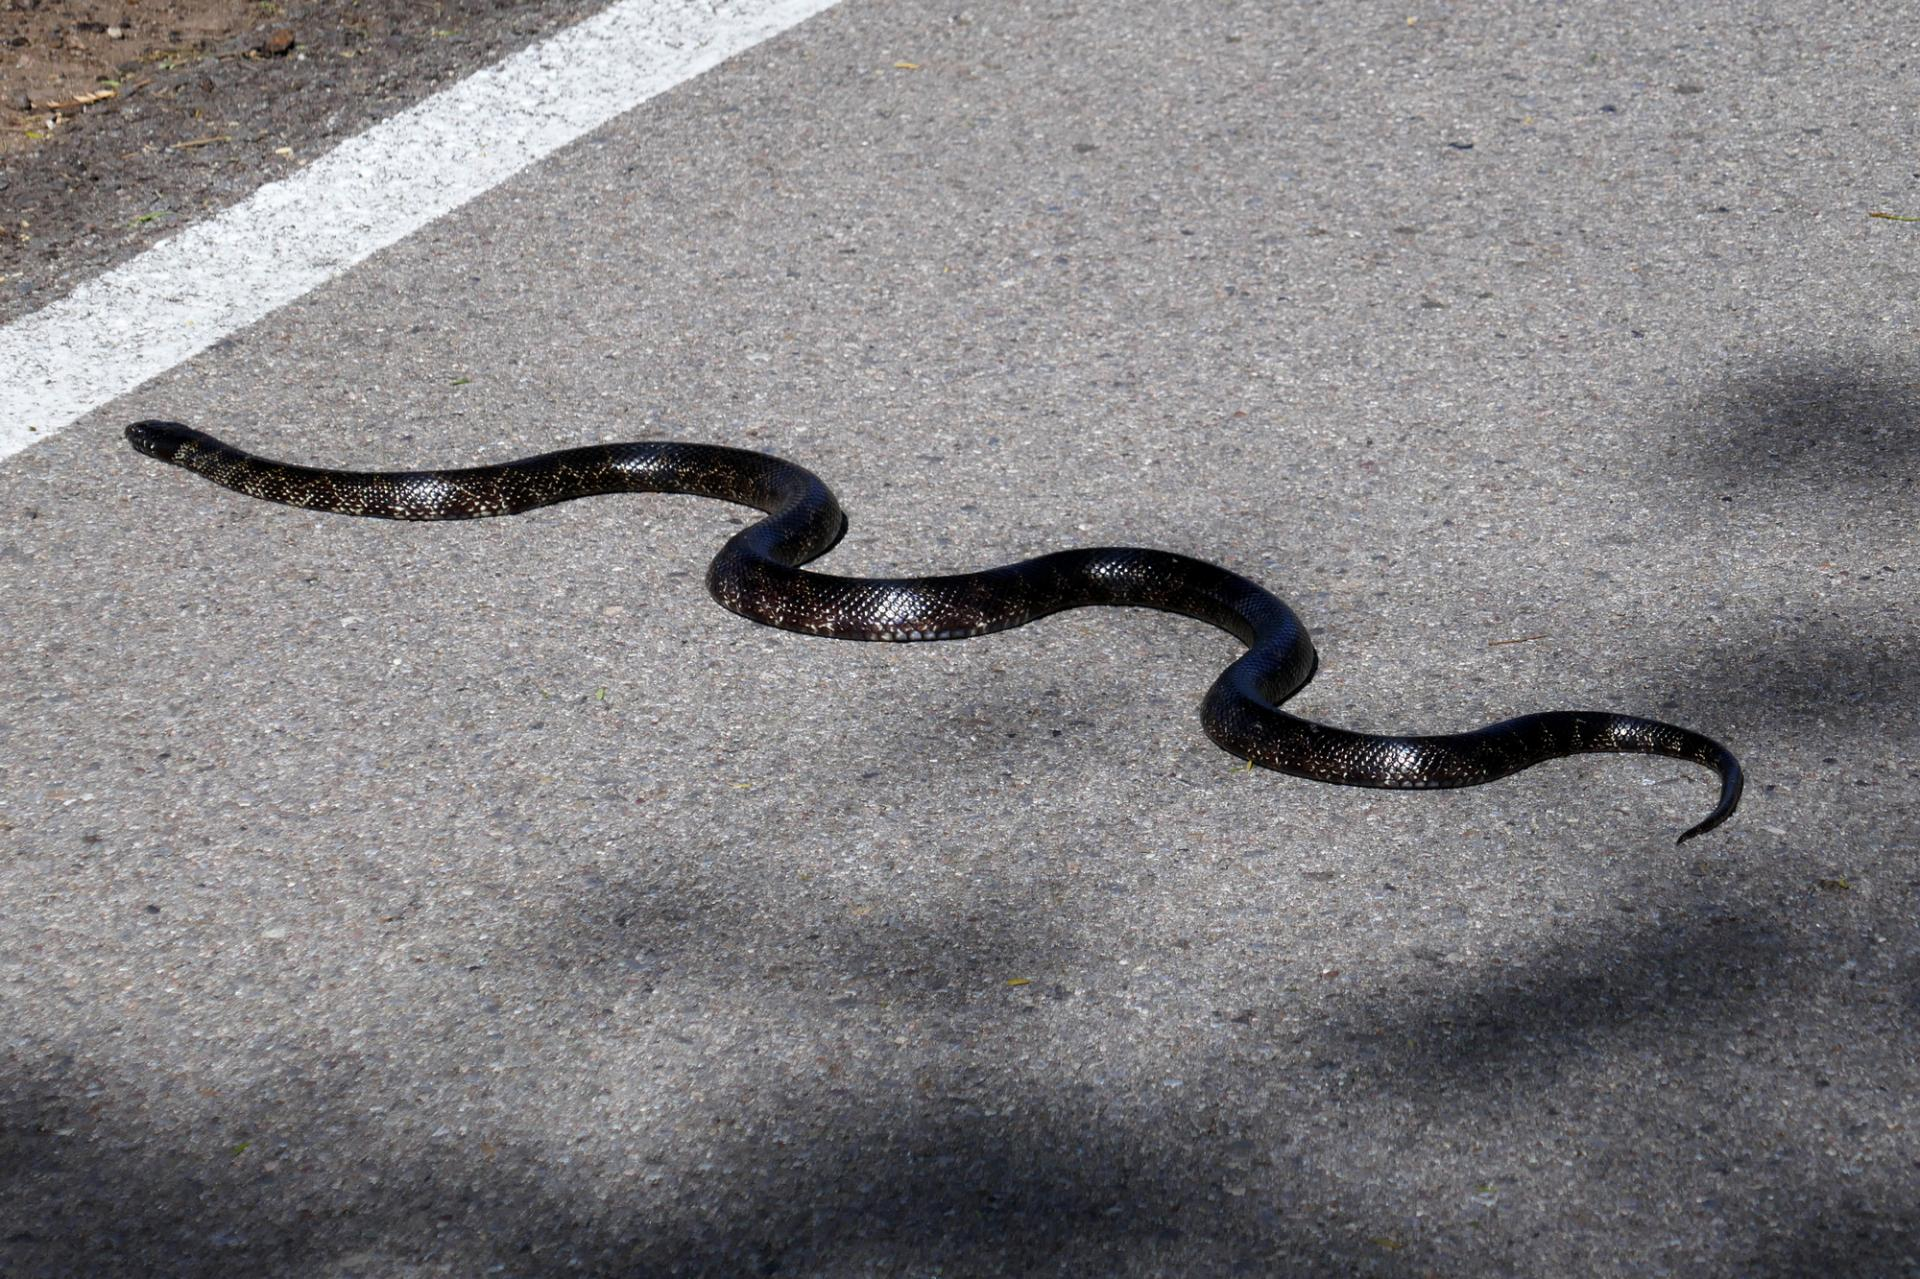 Serpent kingsnake sur piste cyclable